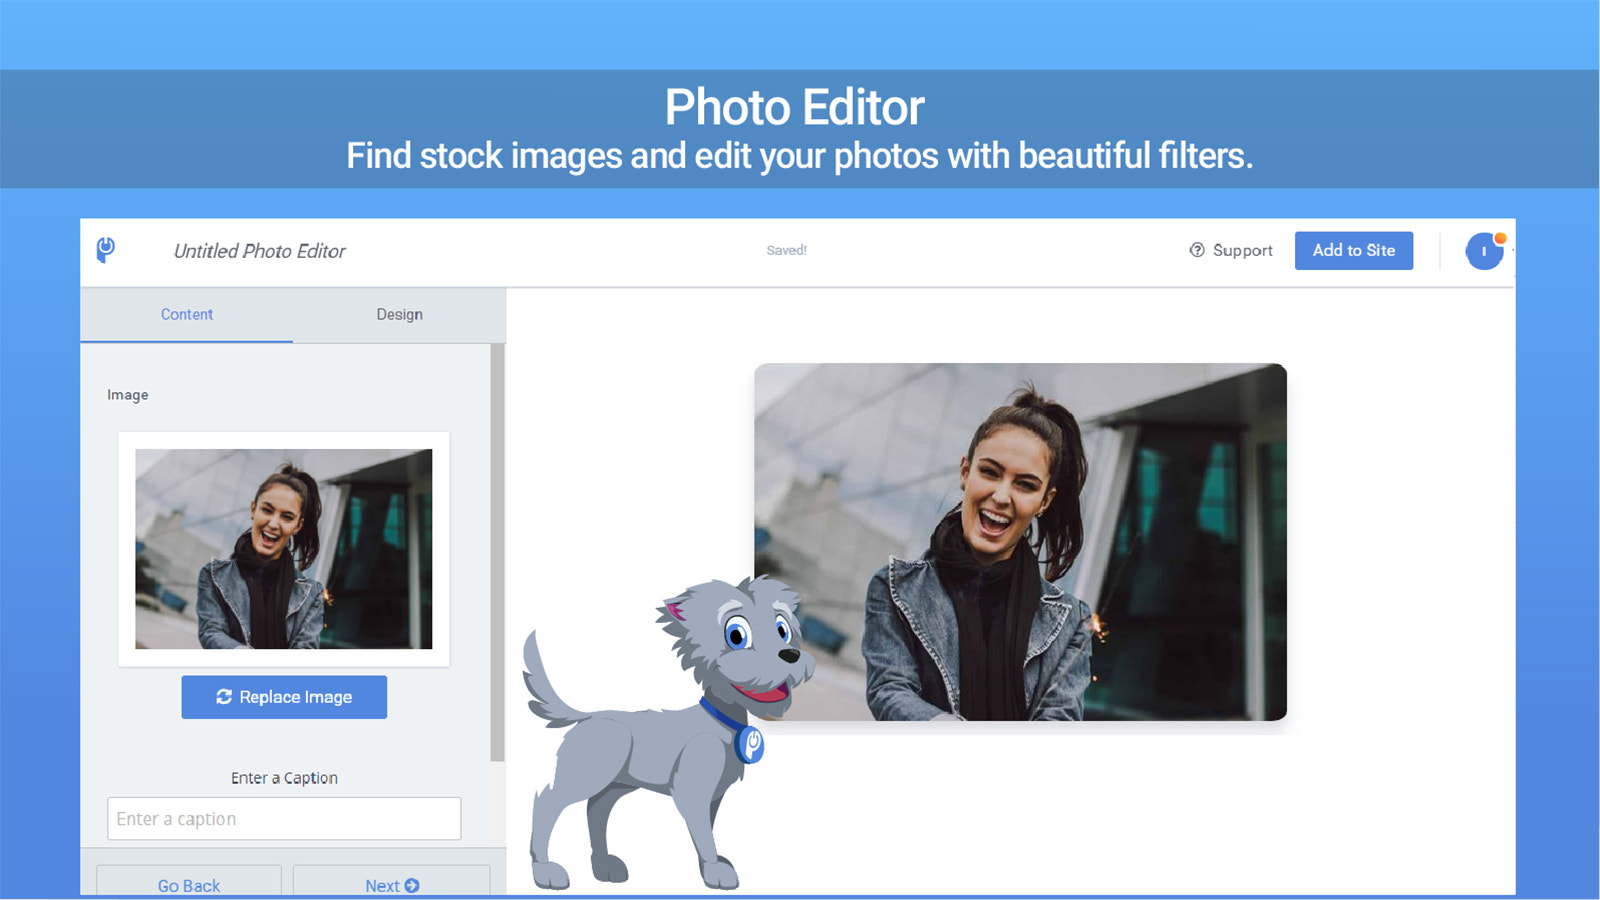 Add gorgeous filters to your photos.